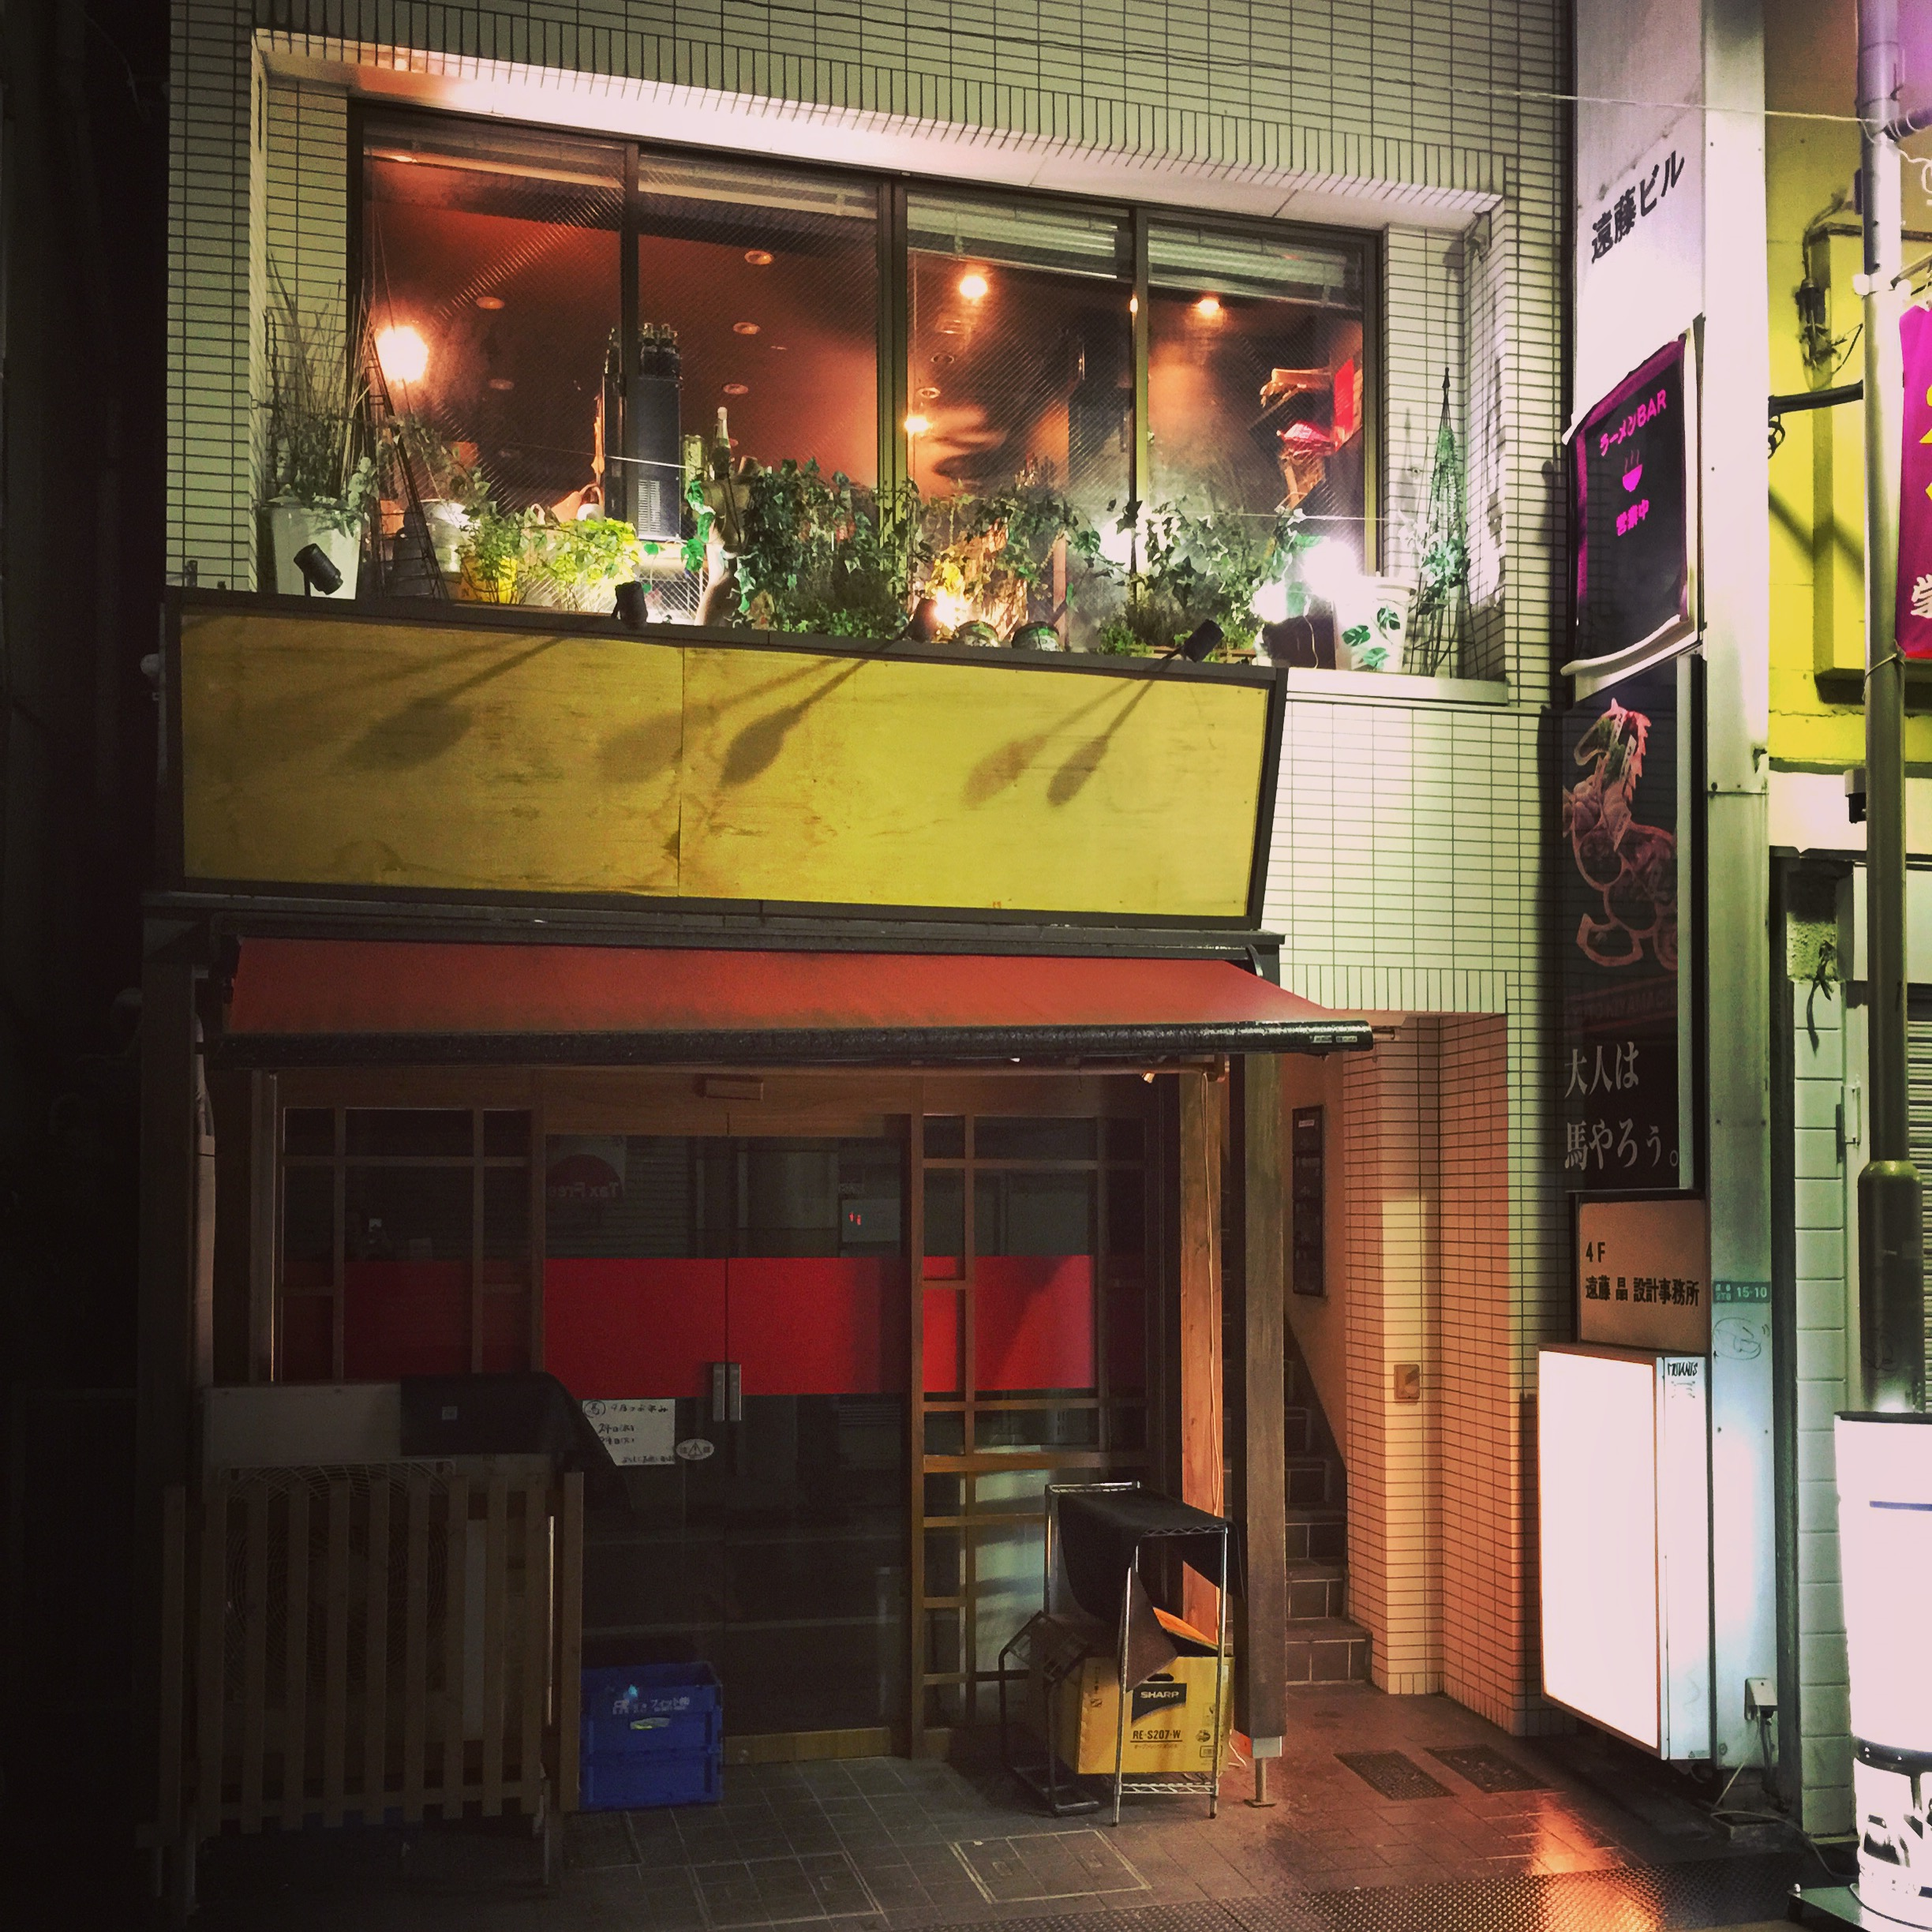 Ramen Bar Snack Izakaya Shop PWB.JPG